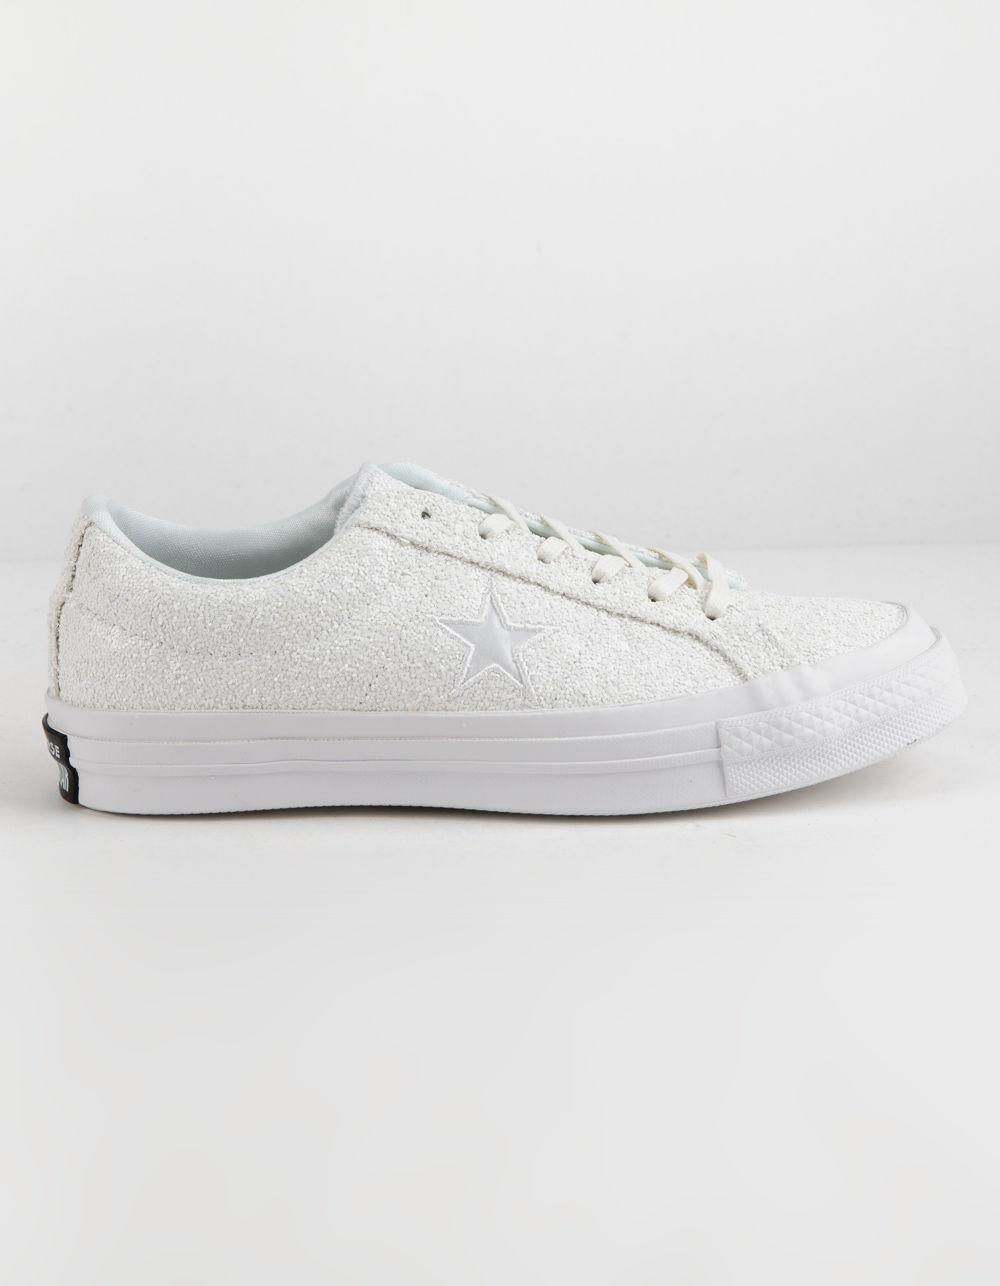 78f7dd59d5d2b7 Lyst - Converse One Star Ox Glitter White Womens Shoes in White